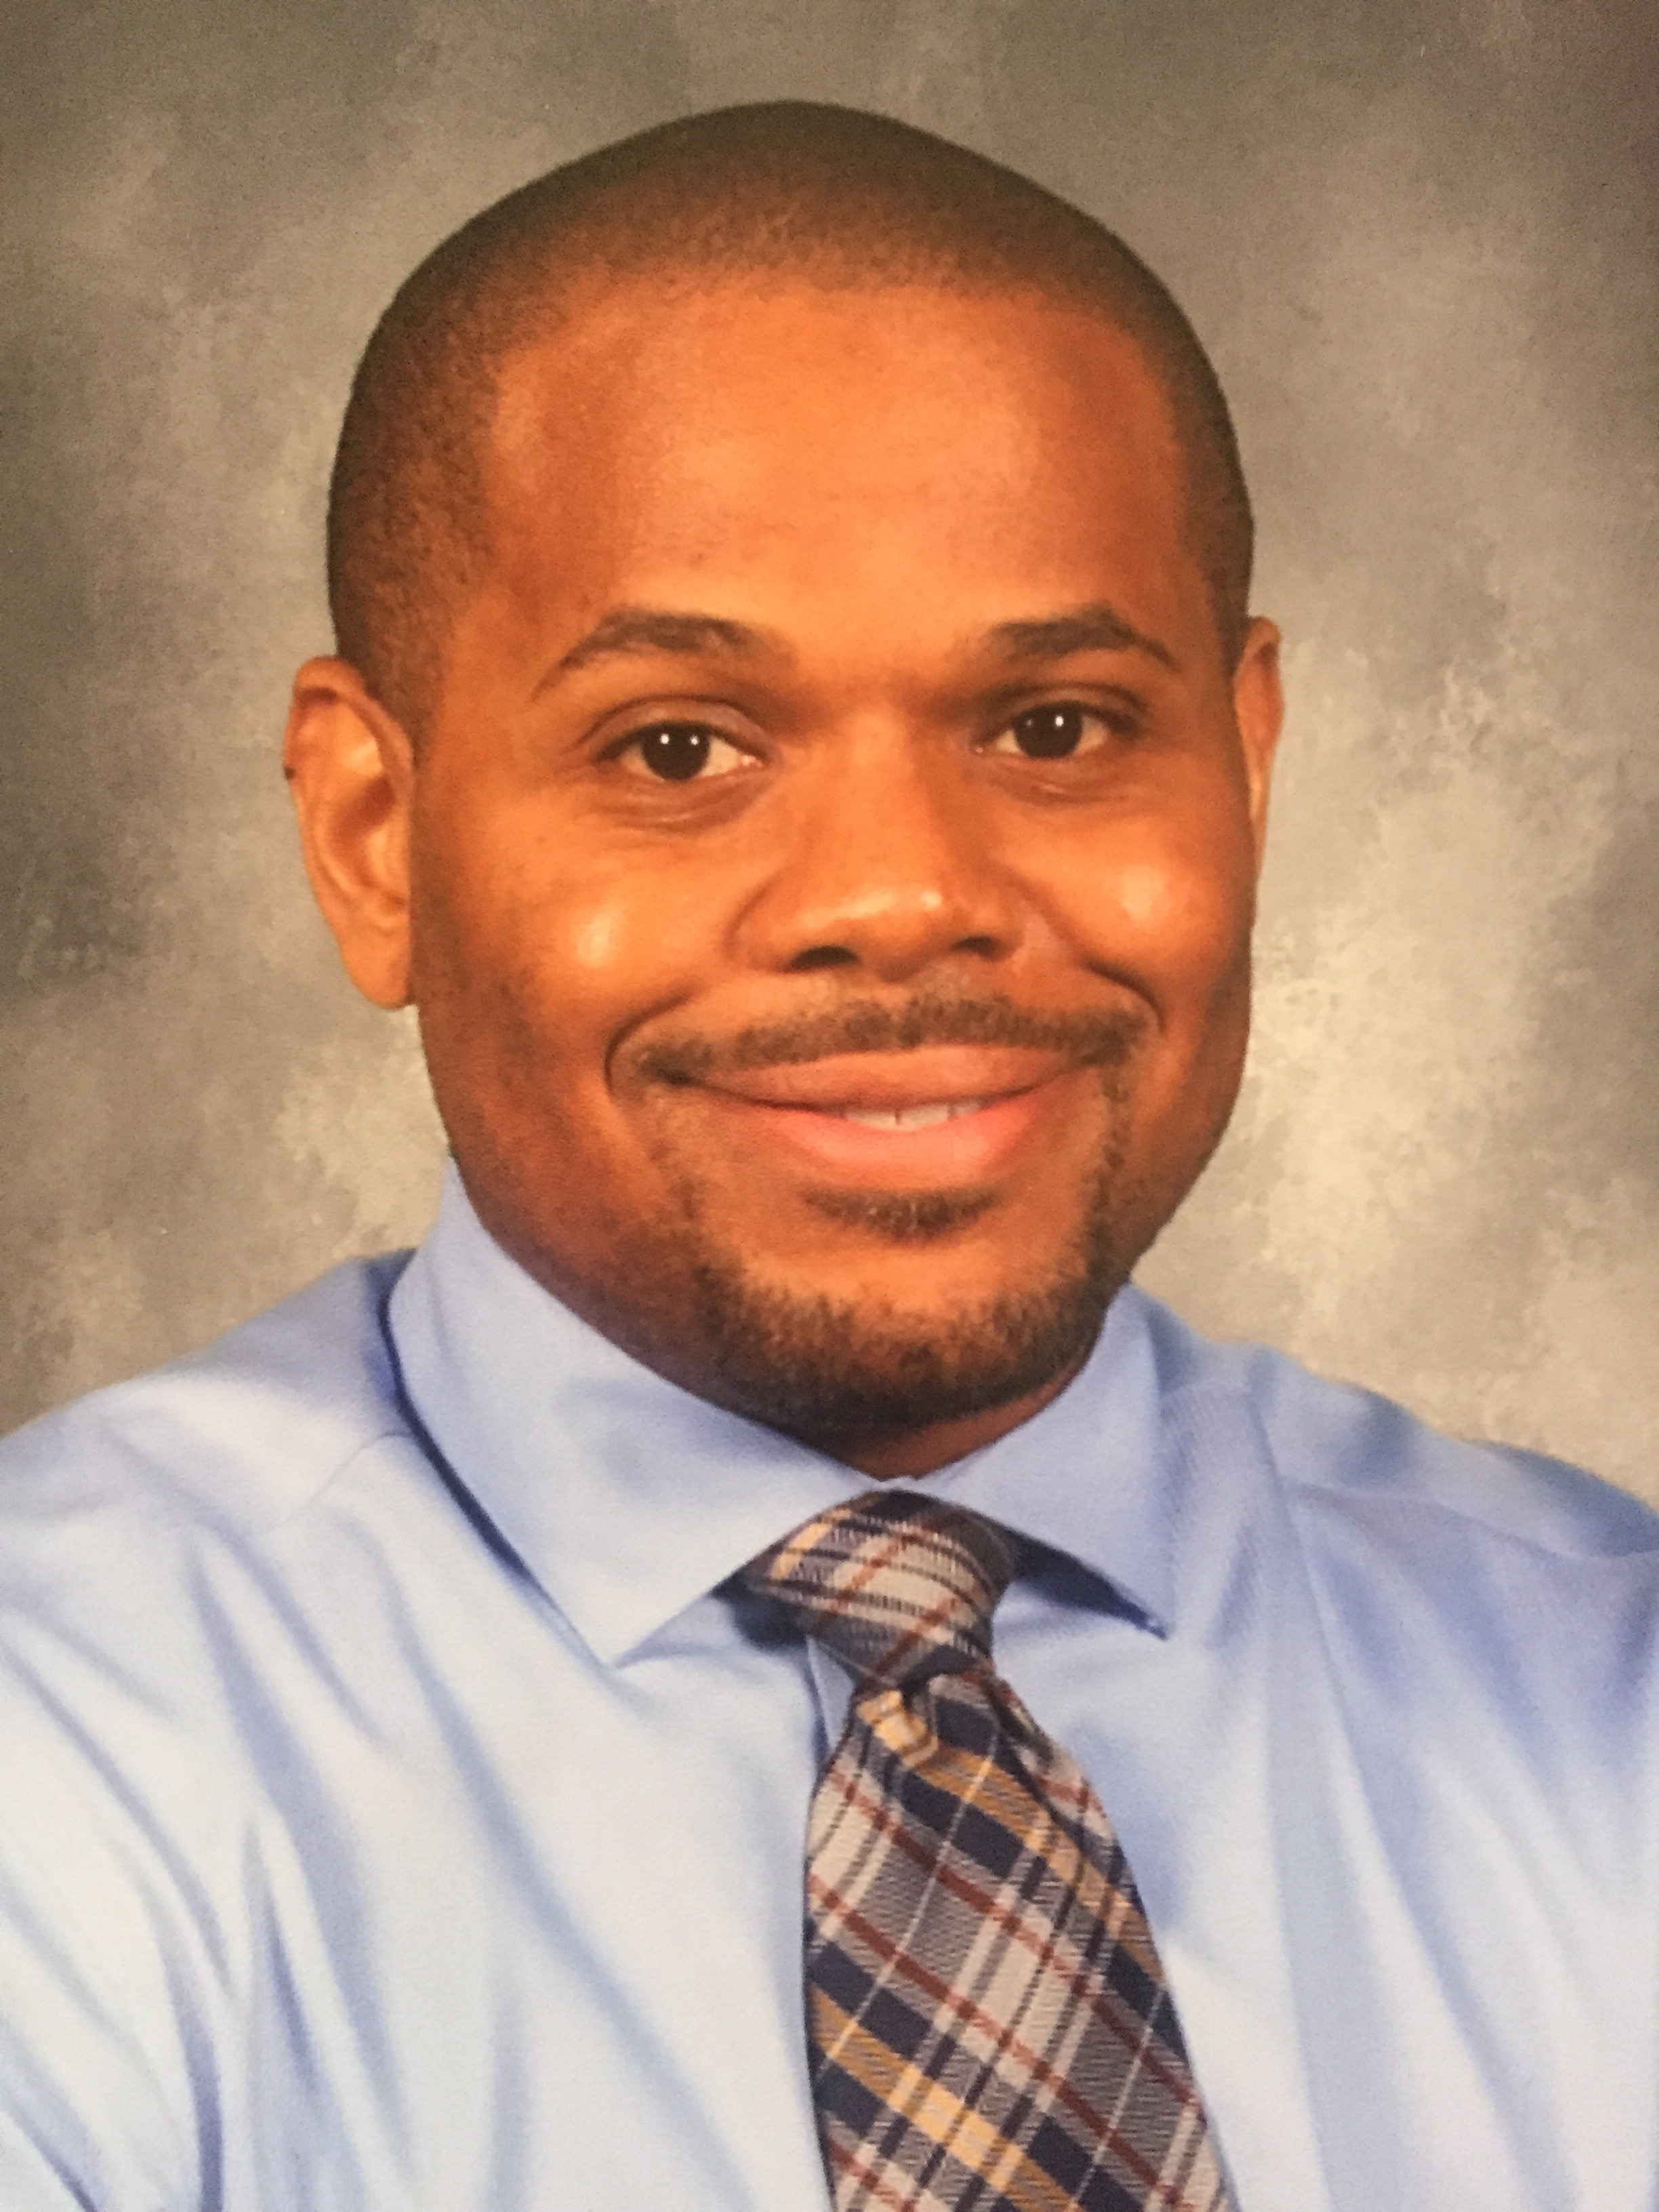 Meet Ron Harvey, Matchbook Learning's new Principal of Merit Preparatory Charter School!